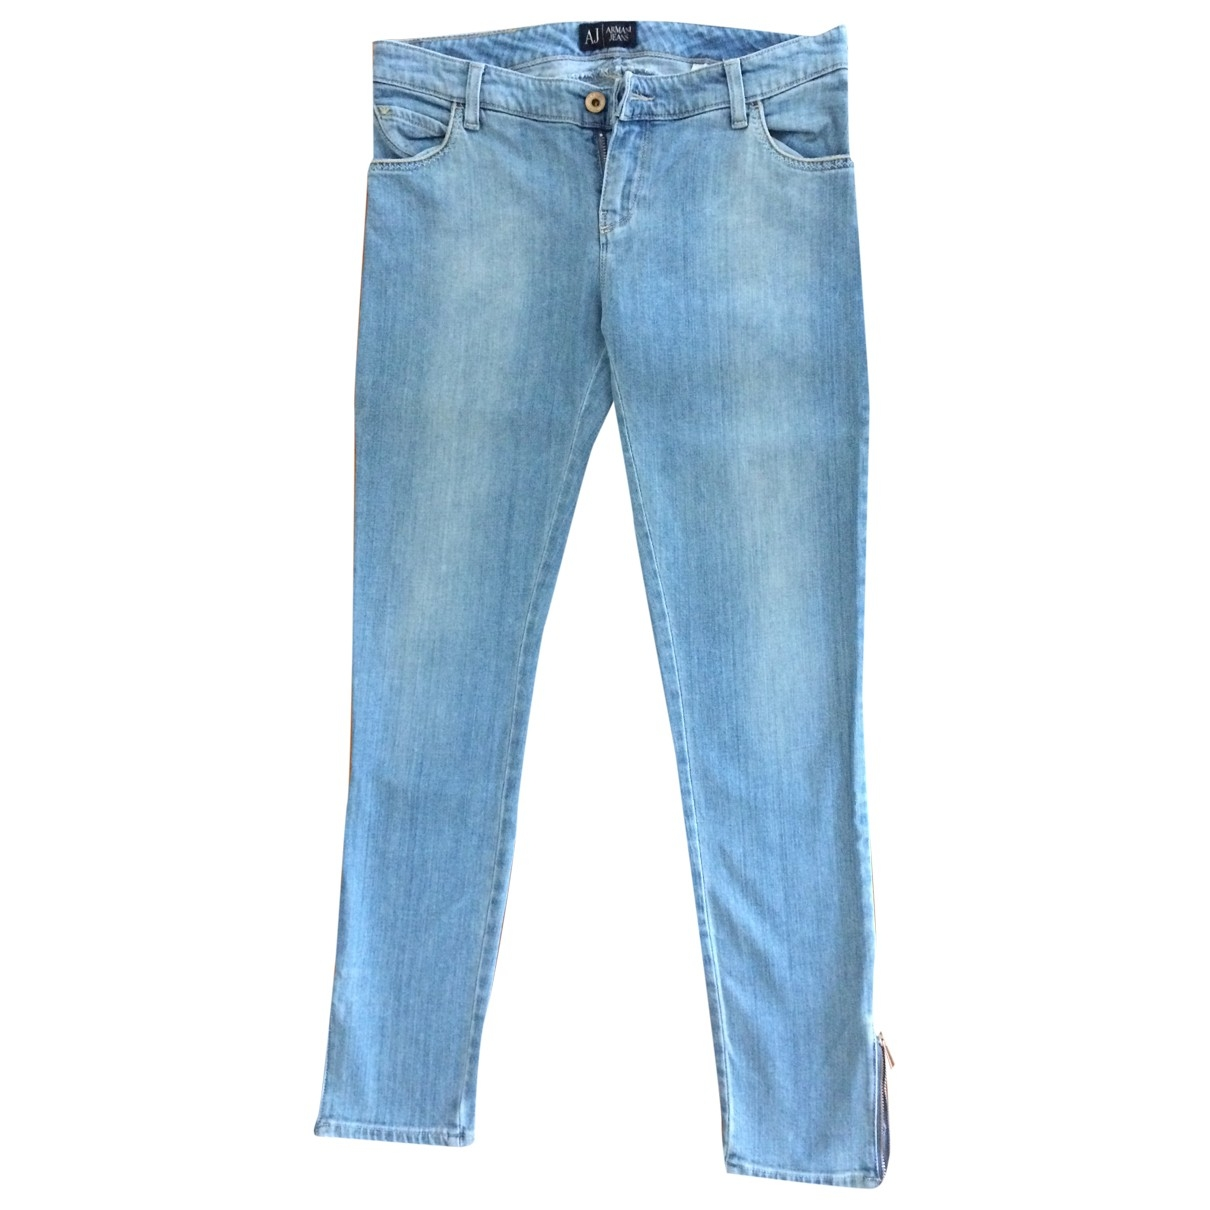 Armani Jeans \N Cotton - elasthane Jeans for Women 27 US